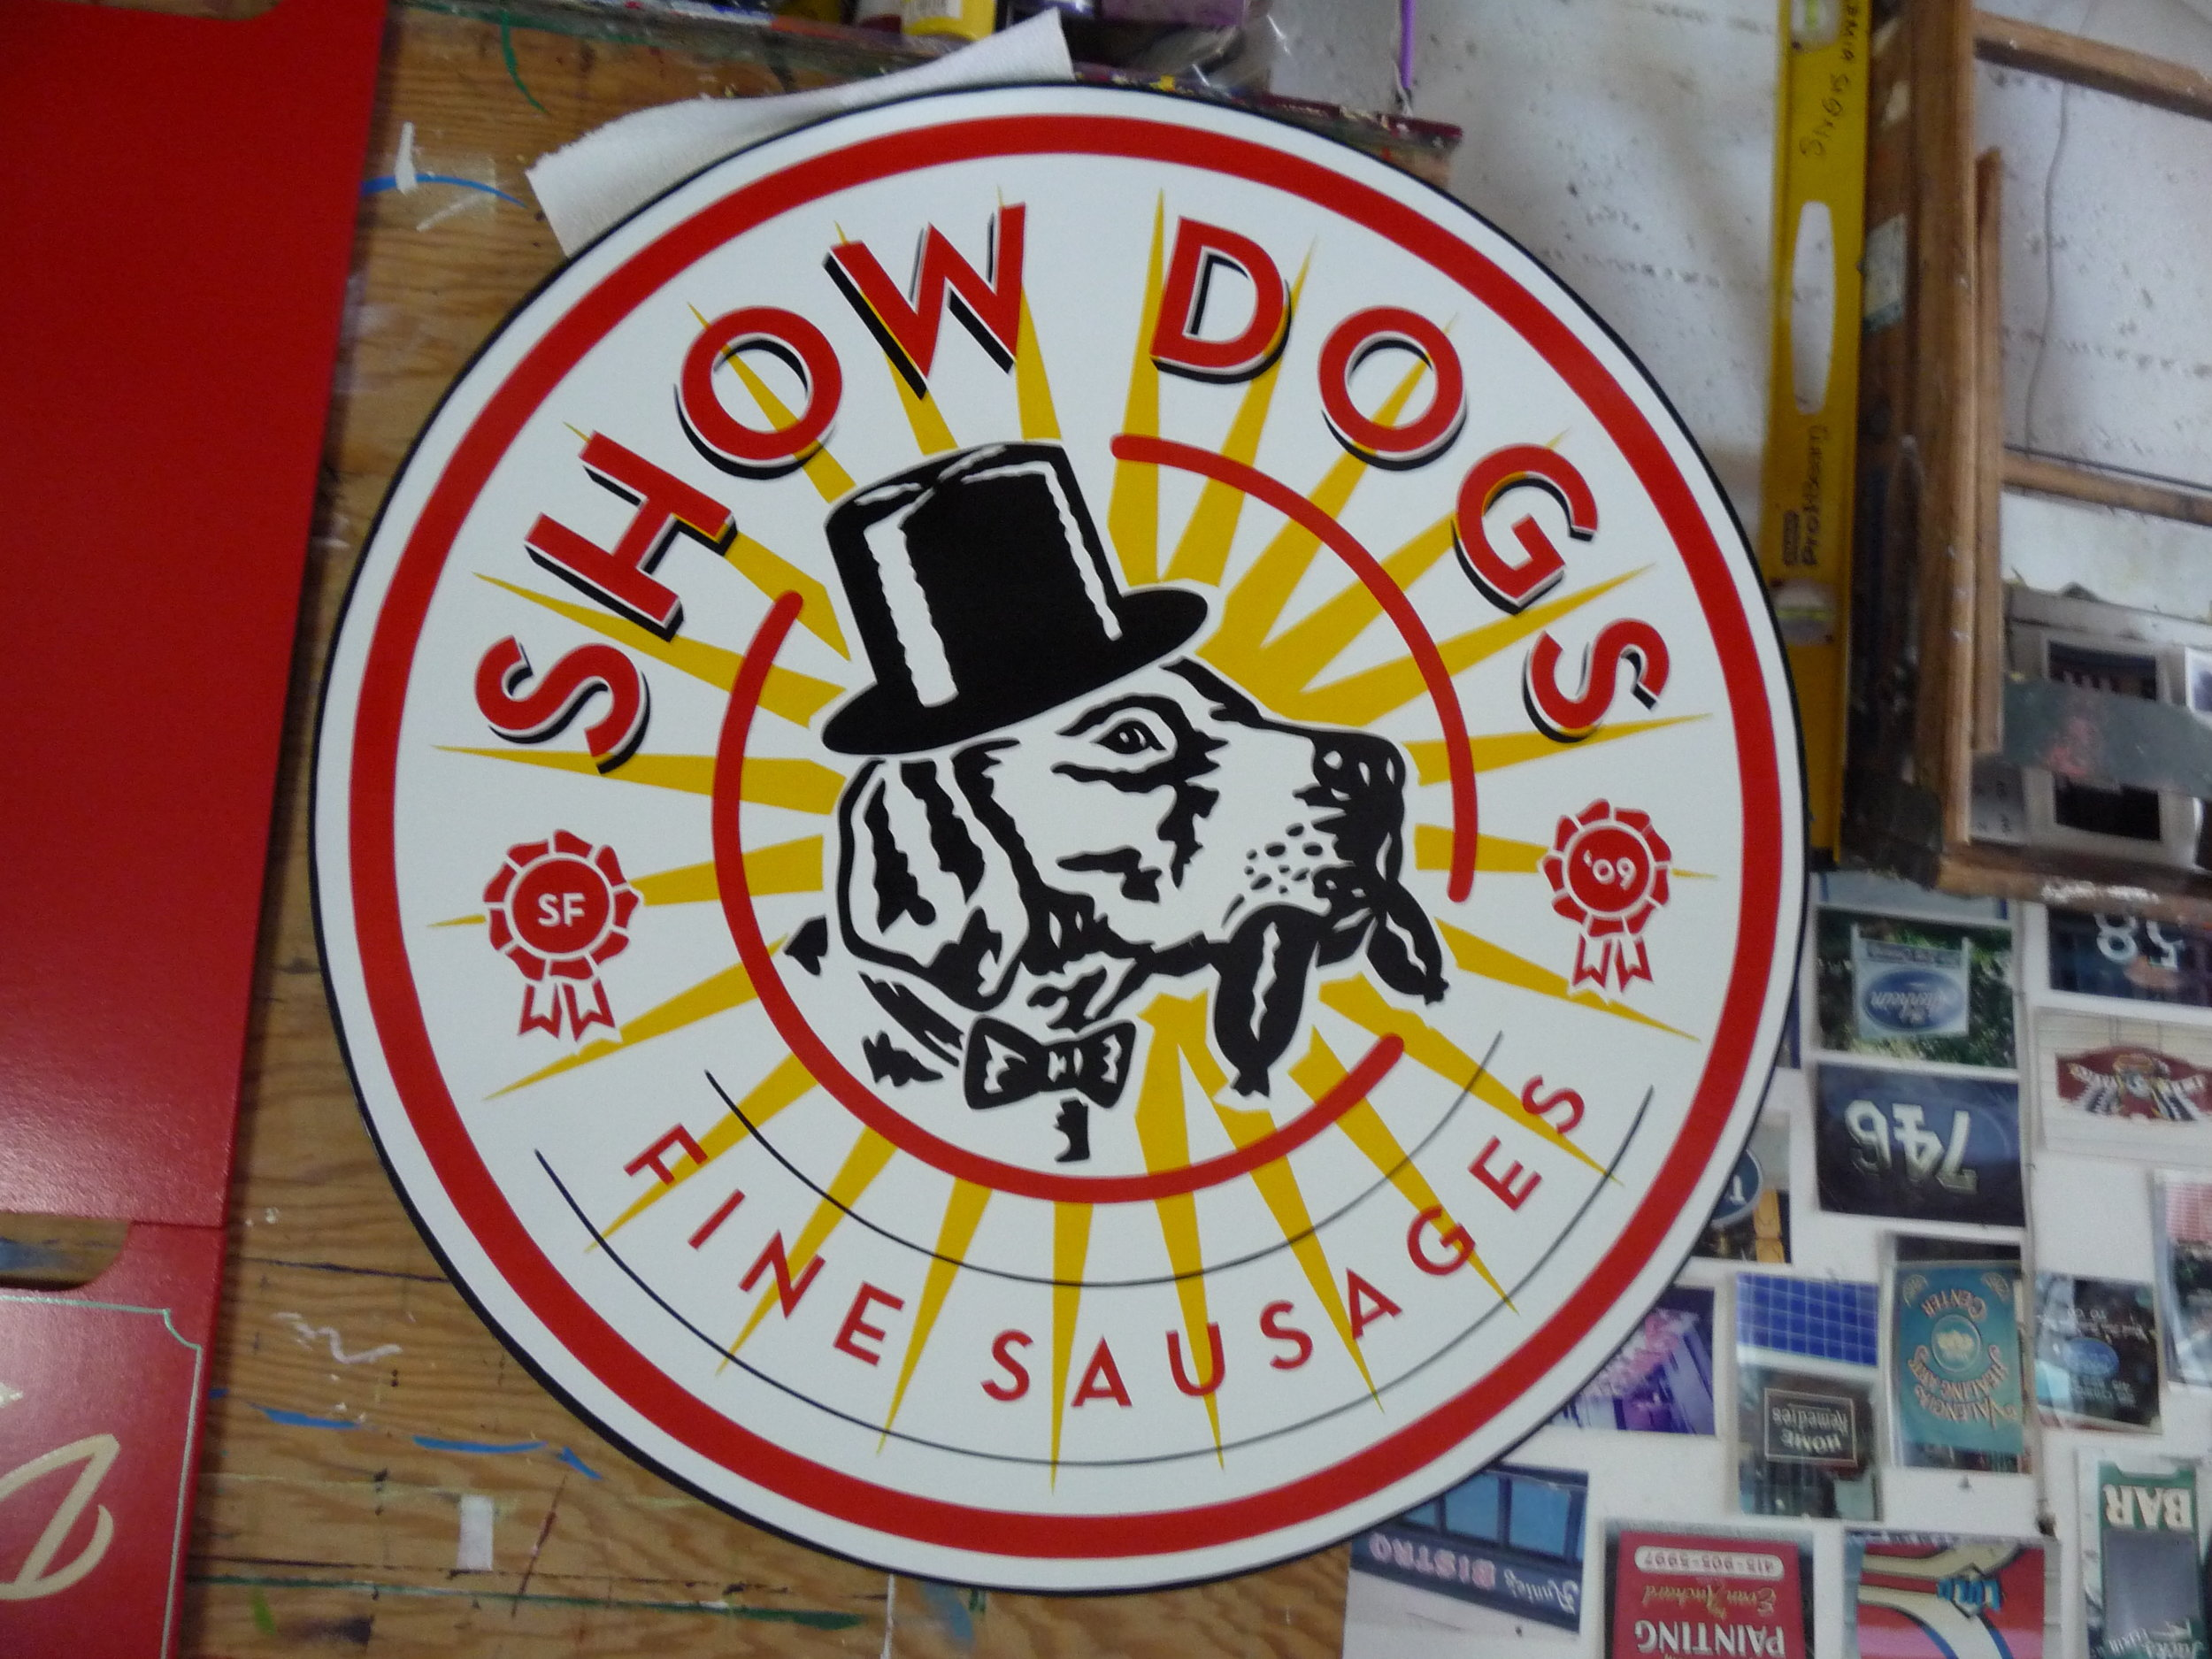 HAND-show-dogs-projecting-sign_4747643886_o.jpg